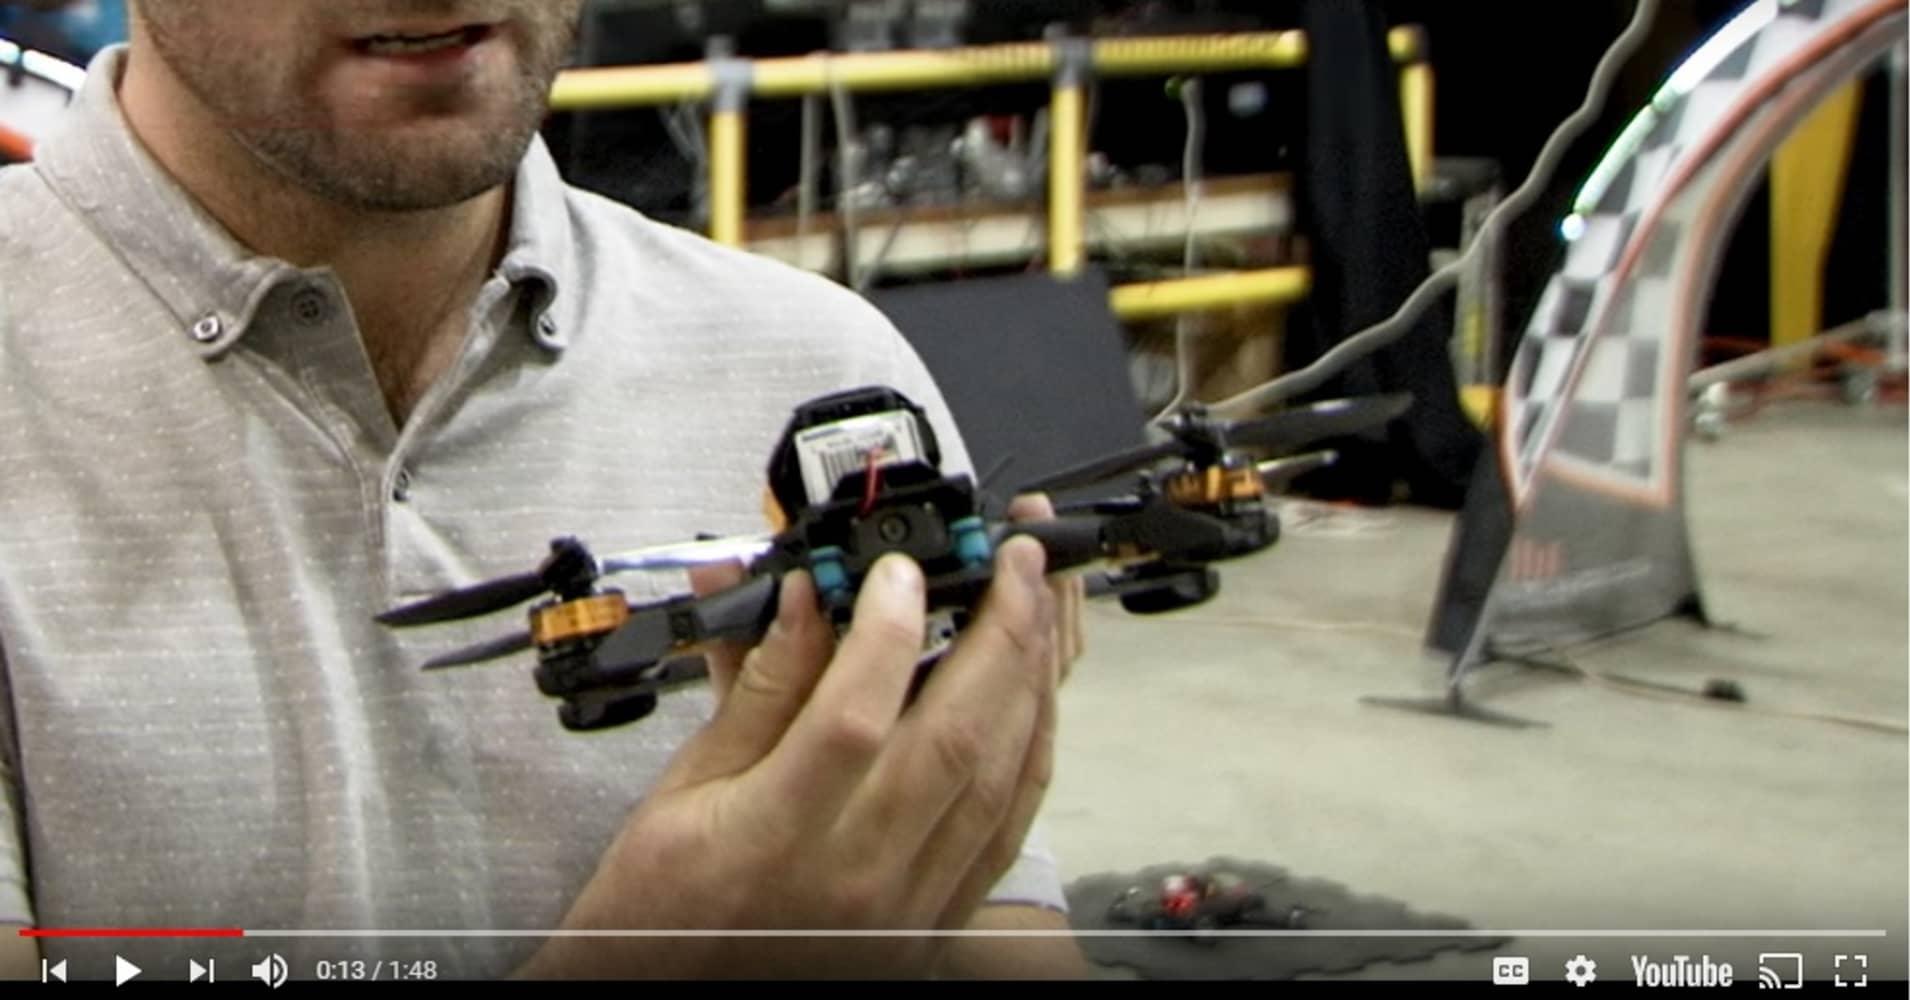 NASA scientists build autonomous drones and raced them against a world-class human drone racer.